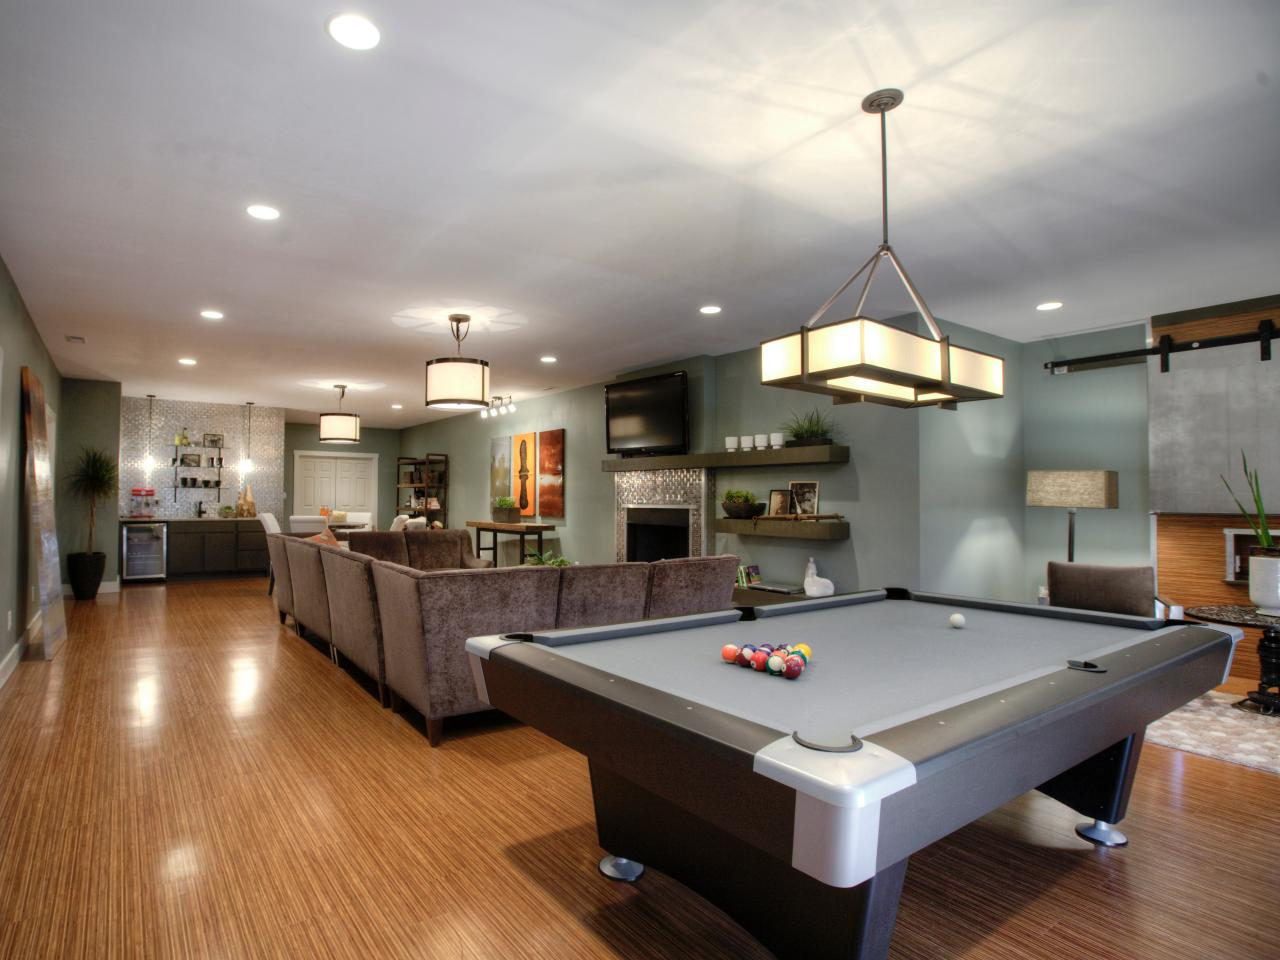 Garage game room ideas memes Basement game room ideas